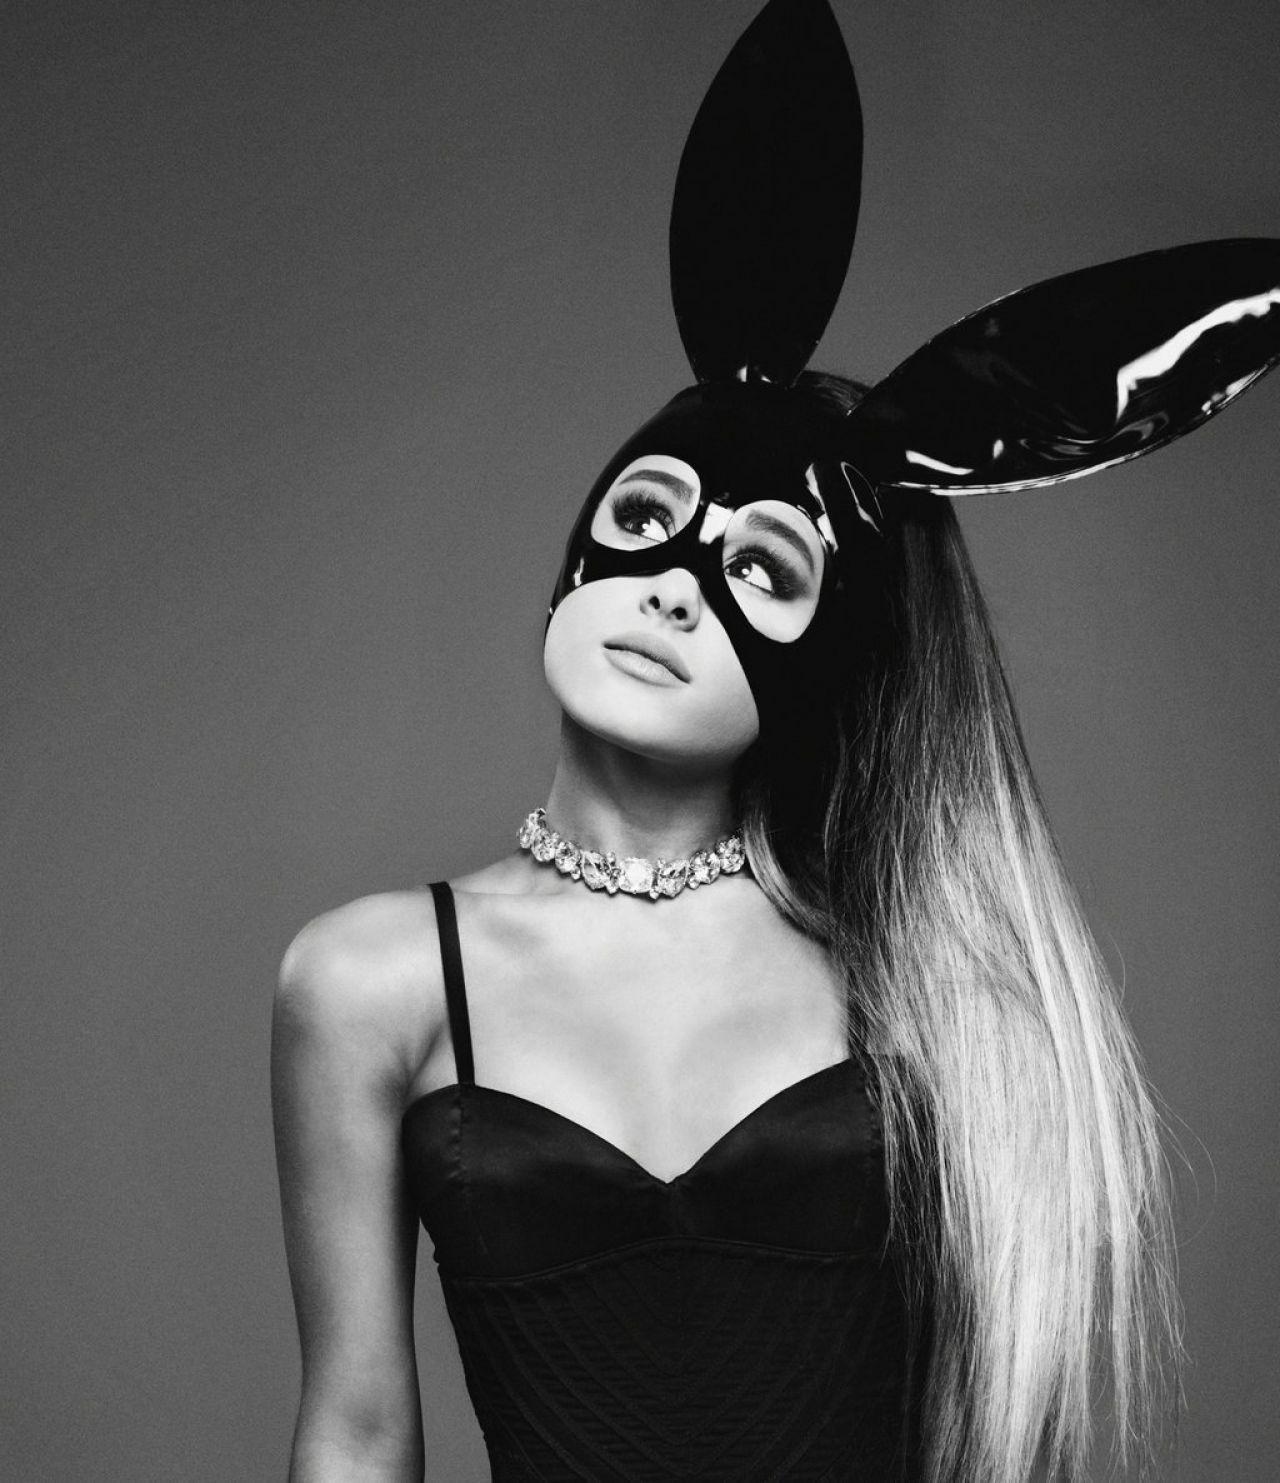 Ariana Grande Dangerous Woman Photoshoot 2016